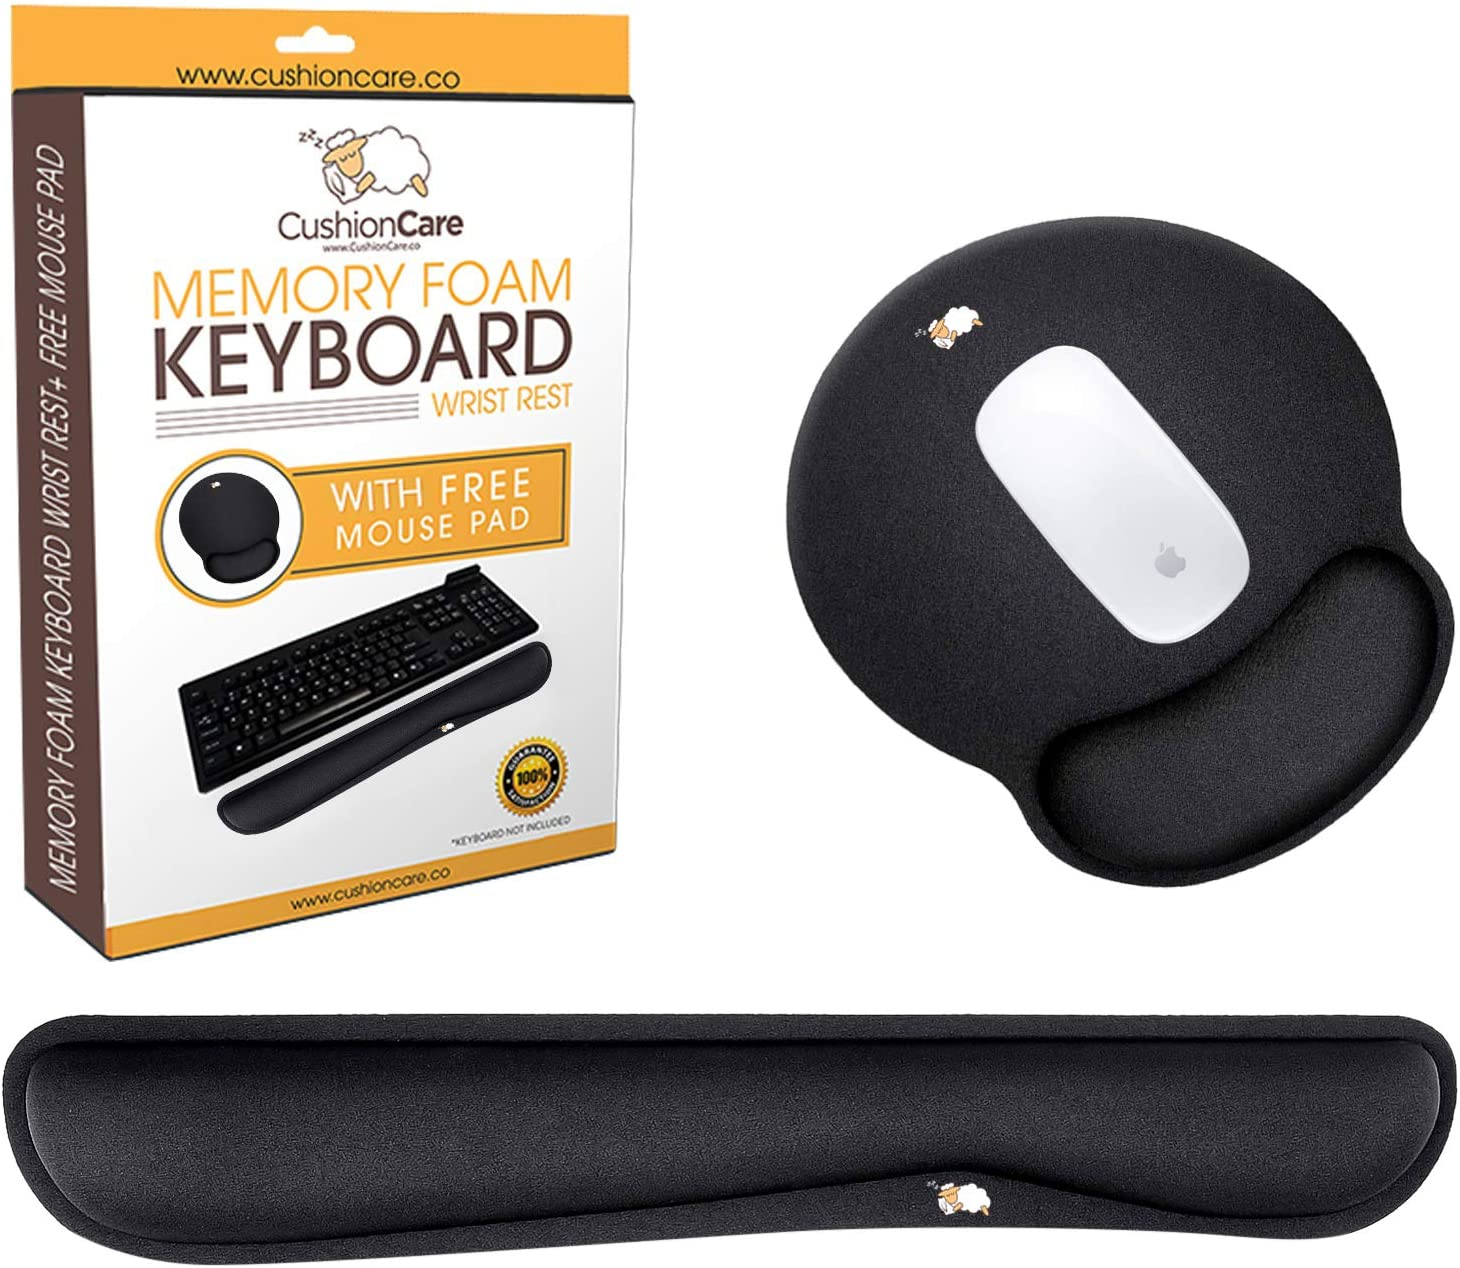 Cushioncare Keyboard Wrist Rest with Mouse Pad - Padded with Memory Foam, Black - Wrist Support for Laptop Computer and Gaming - Guard Against Carpal Tunnel Syndrome